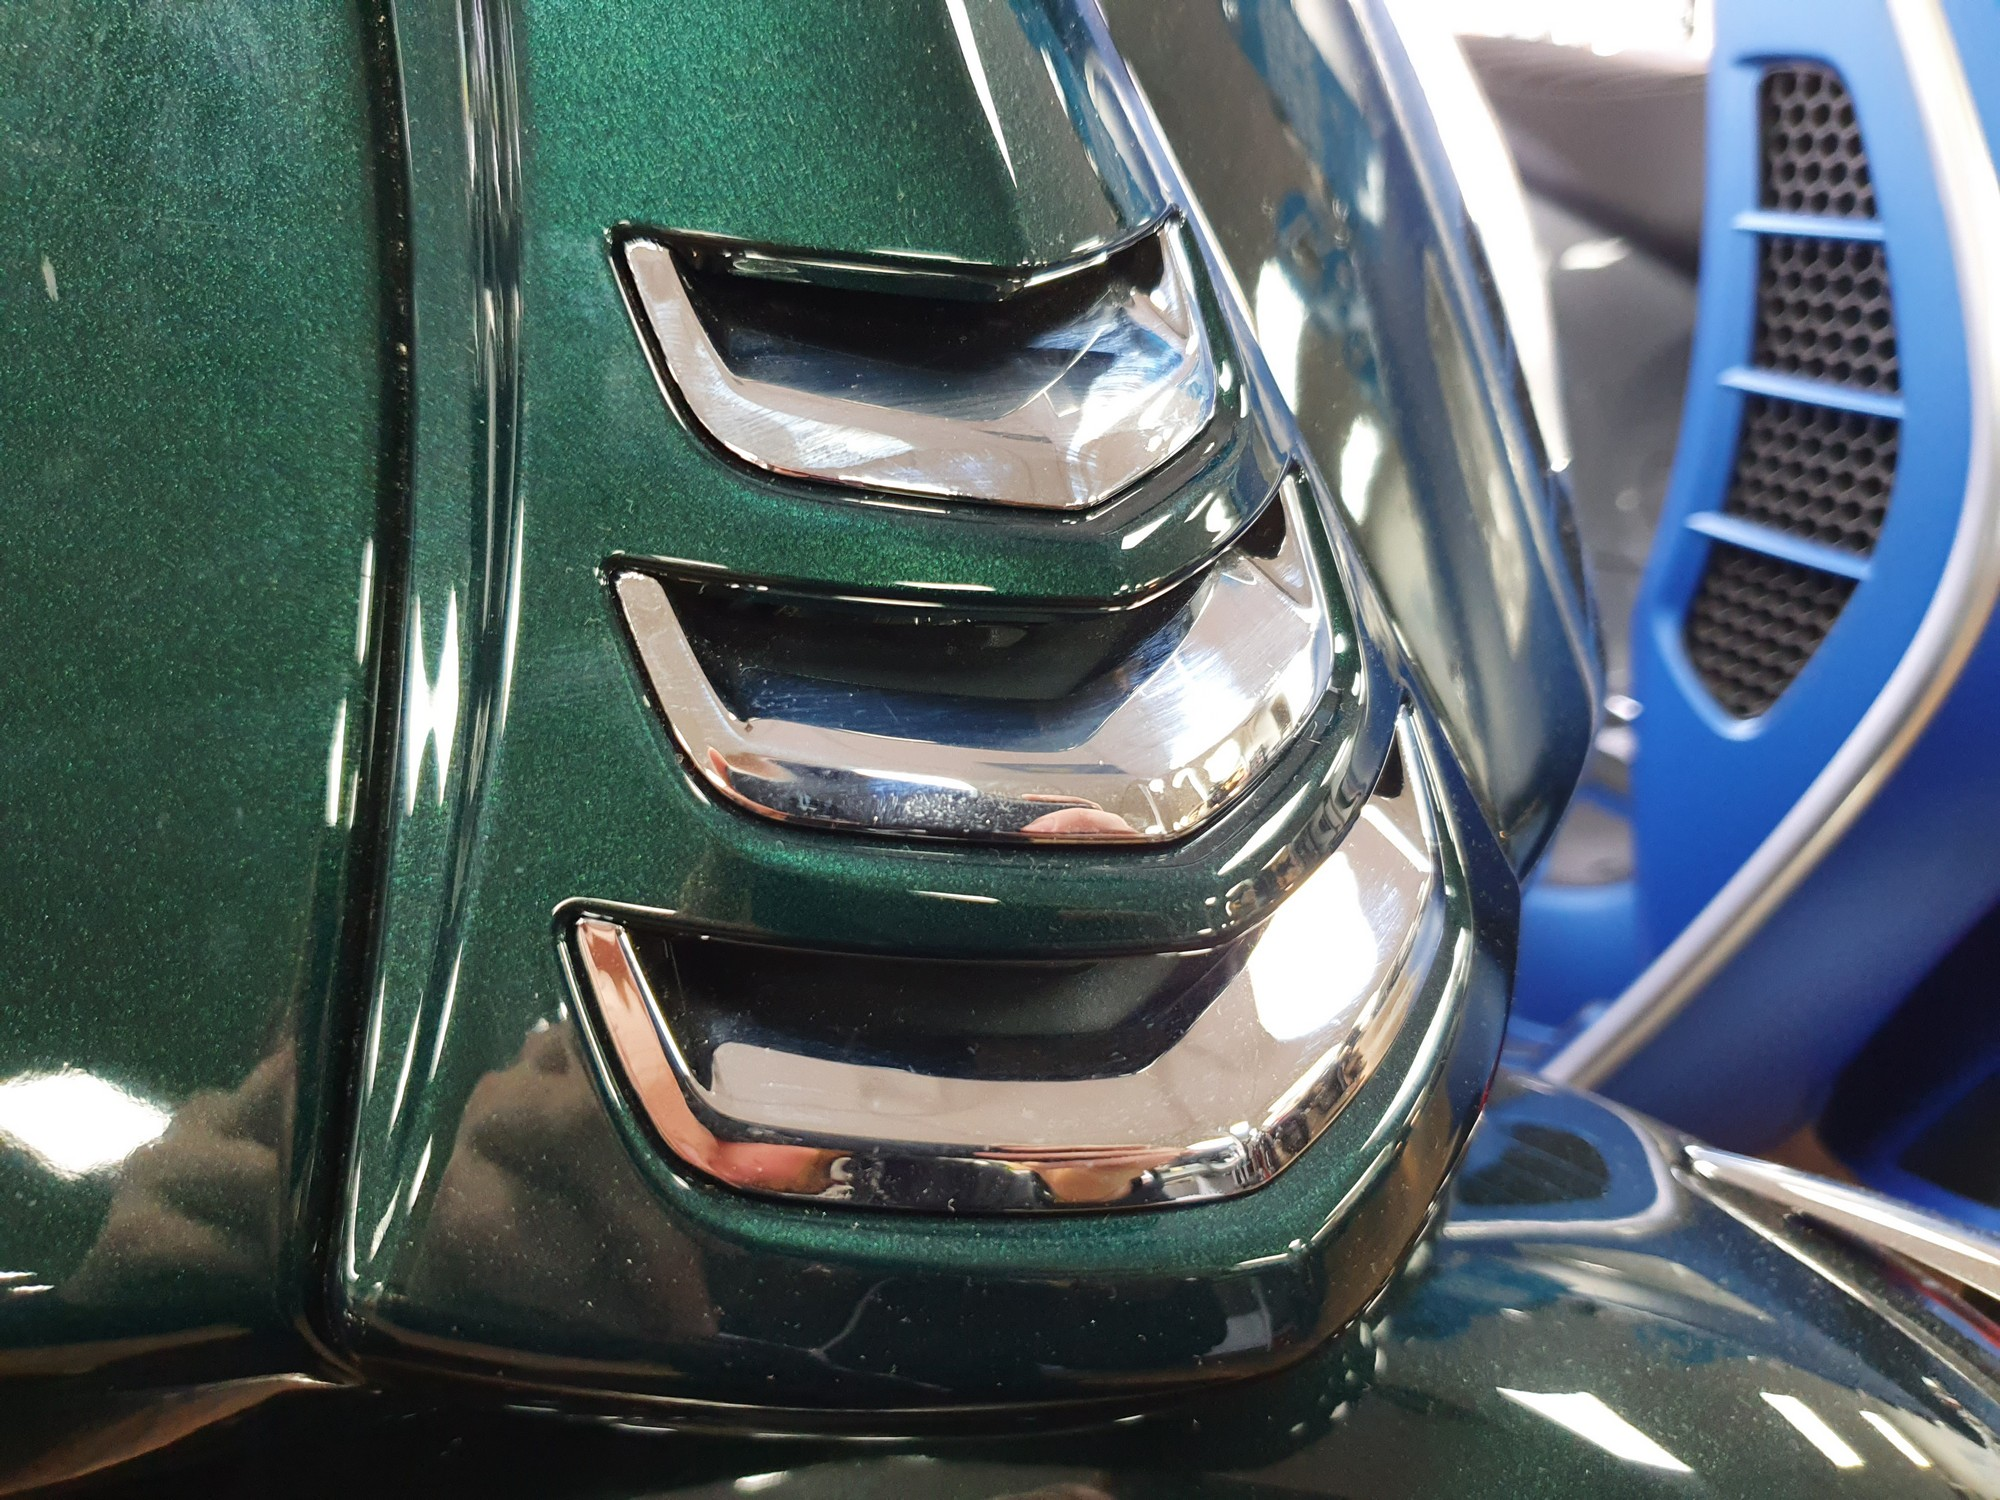 Chrome Horn Cover Grill Fins 3 Pack Vespa Gts My19 Midland Scooter Centre Midland Scooter Centre